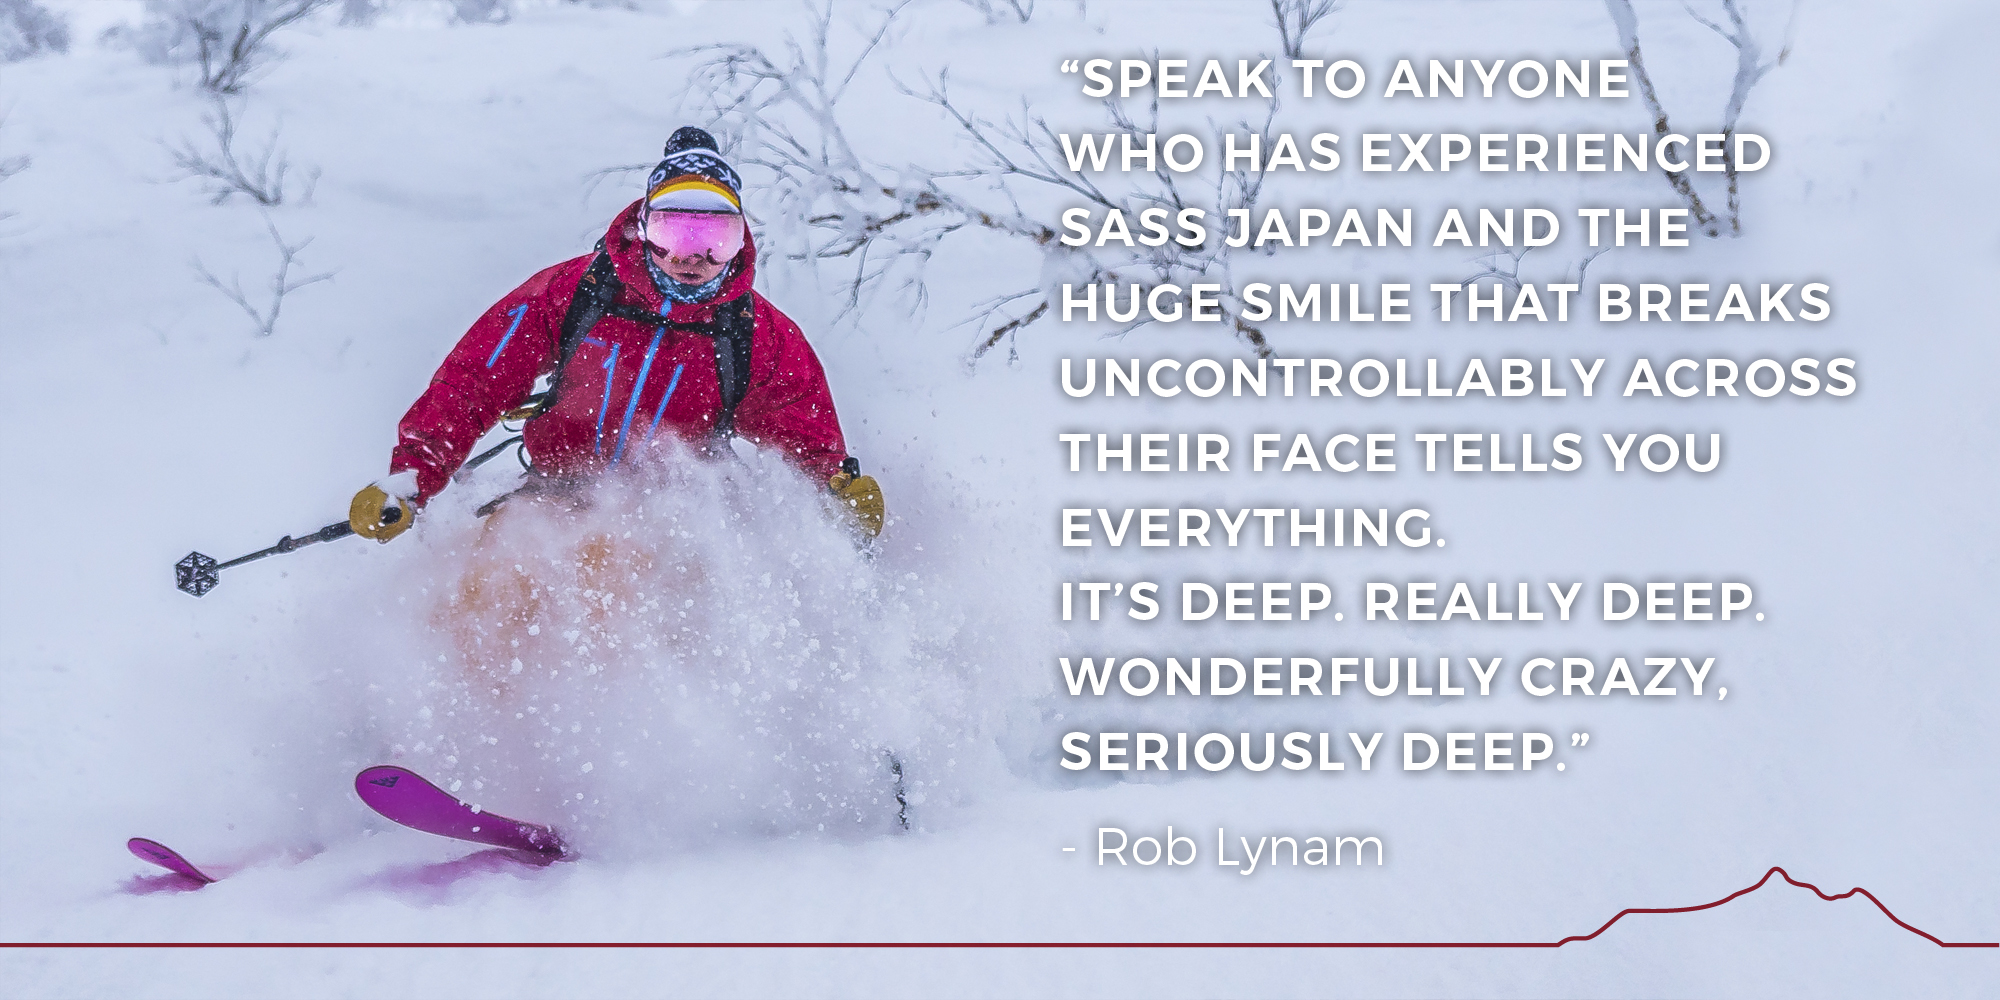 Speak to anyone who has experienced SASS Japan and the huge smile that breaks uncontrollably across their face tells you everything. It's deep. Really deep. Wonderfully crazy, seriously deep. - Rob Lynam